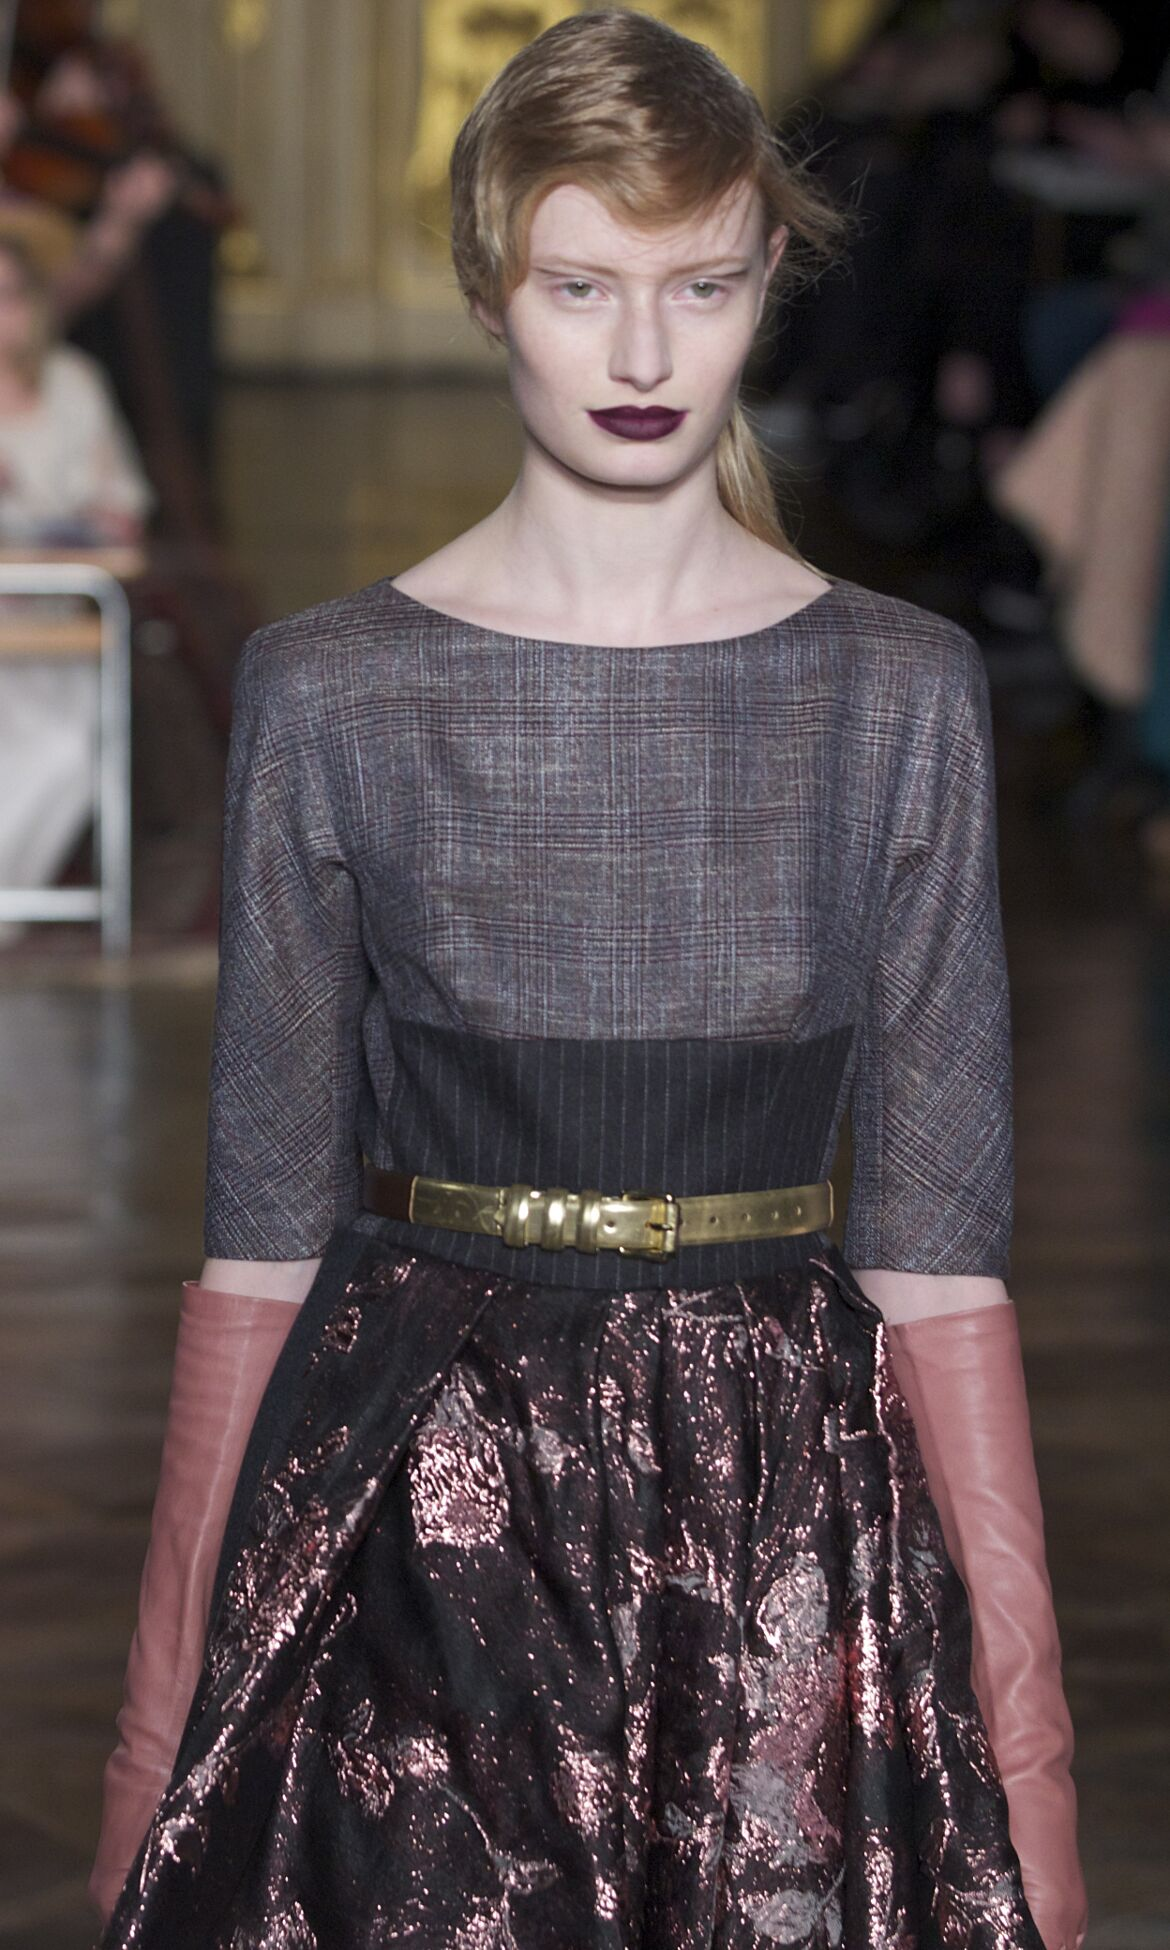 Antonio Marras Fall Winter 2013 14 Women Collection Milan Fashion Week Fashion Show